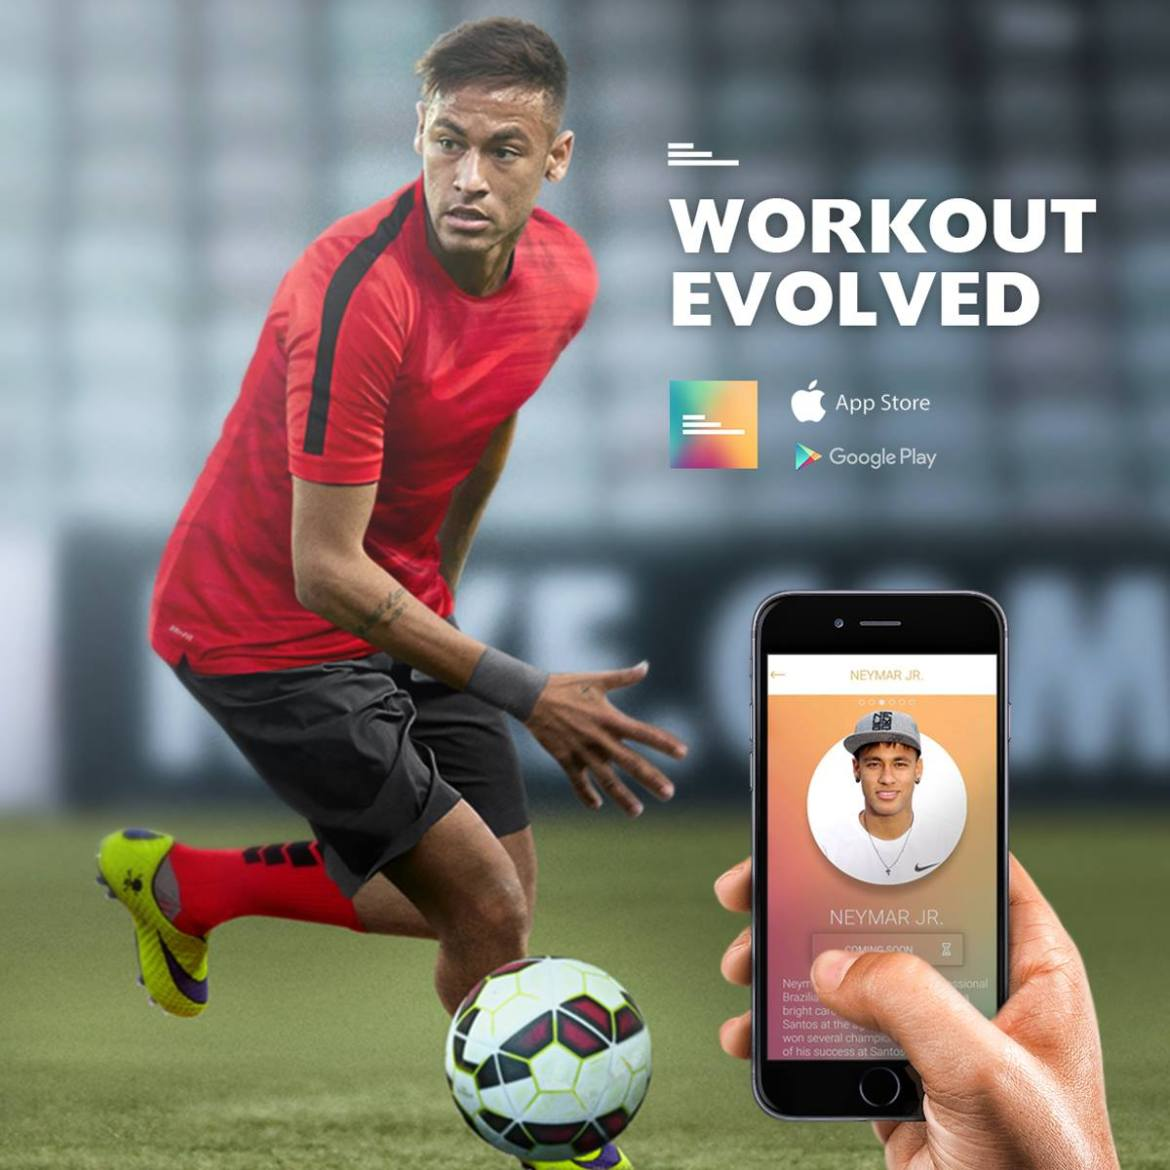 Neymar Jr. Brand Endorsement Deals Promotions Ambassador TVC Advertising Sponsorship Partnership NABUfit